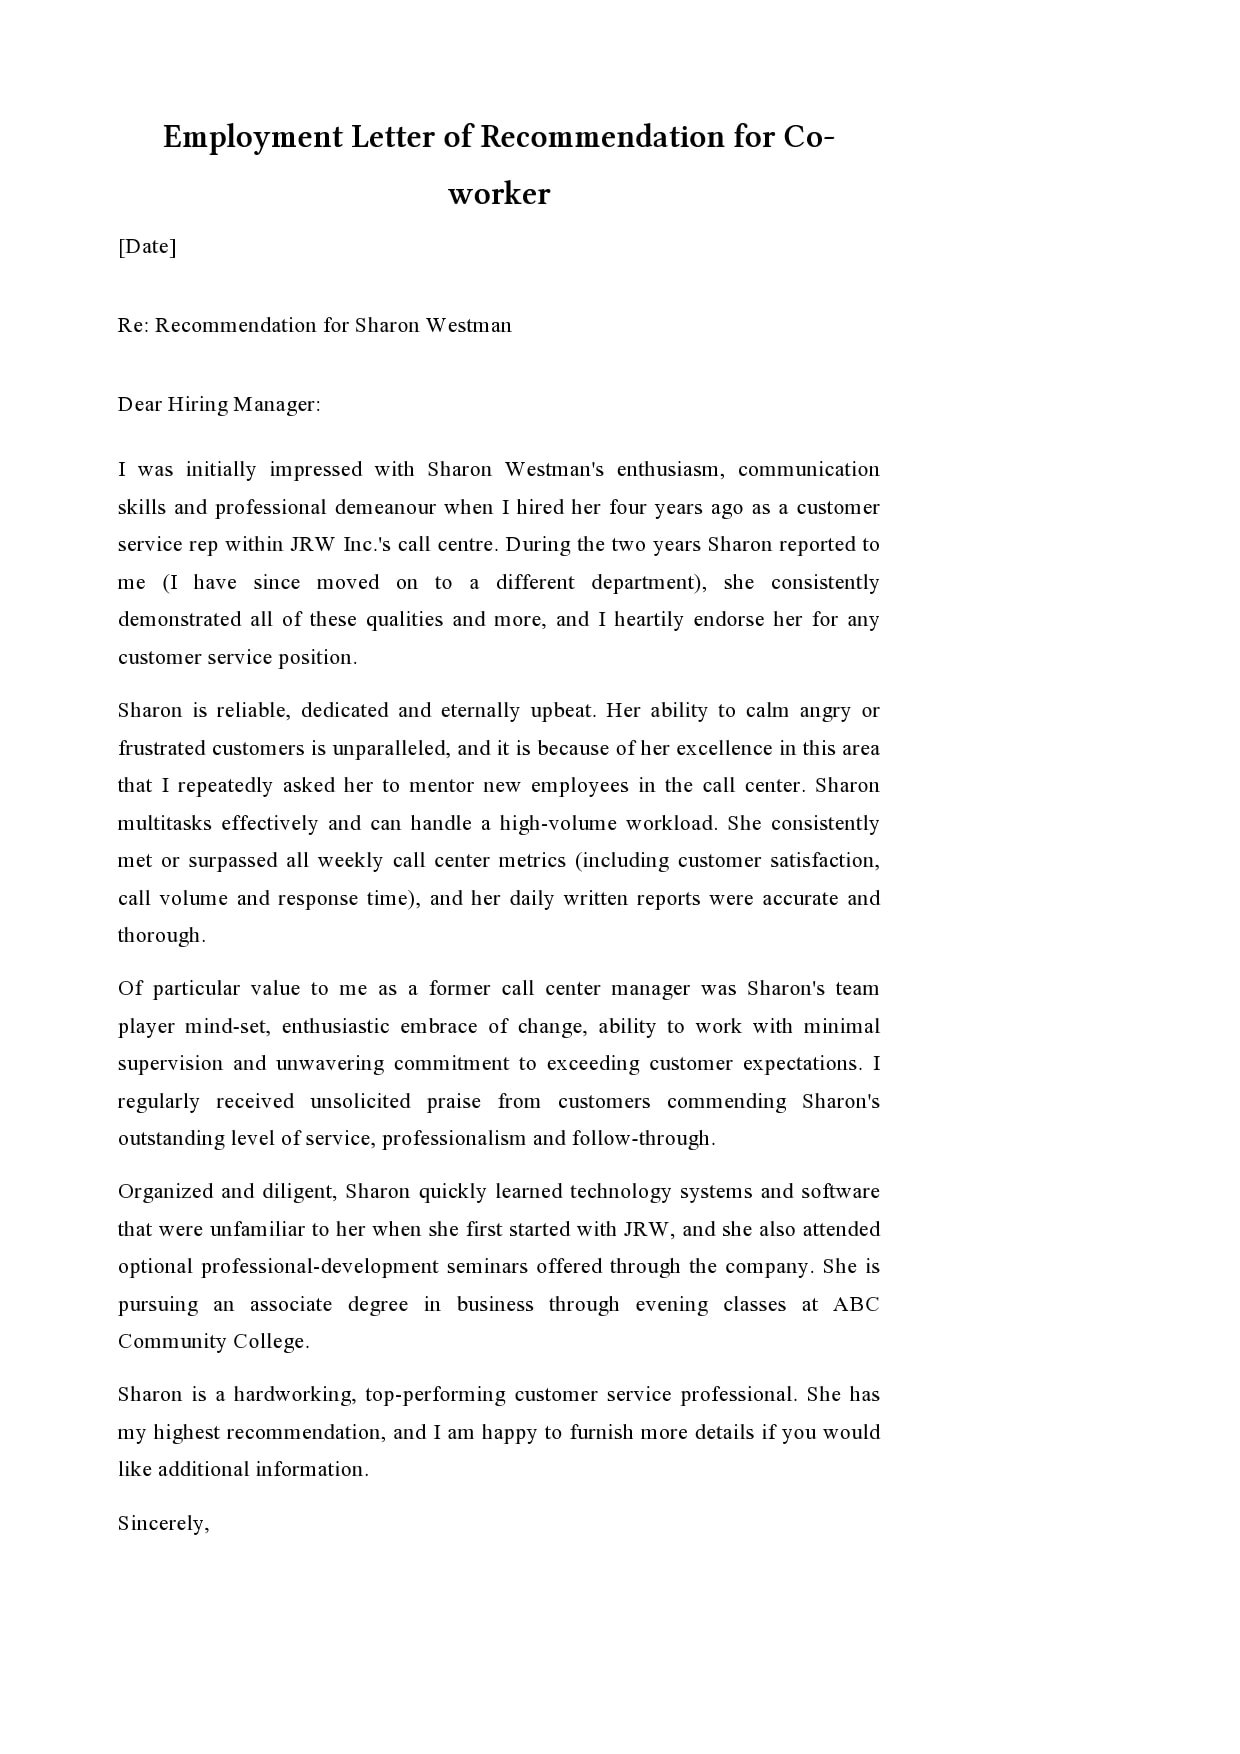 Recommendation Letter Sample For Job from templatearchive.com